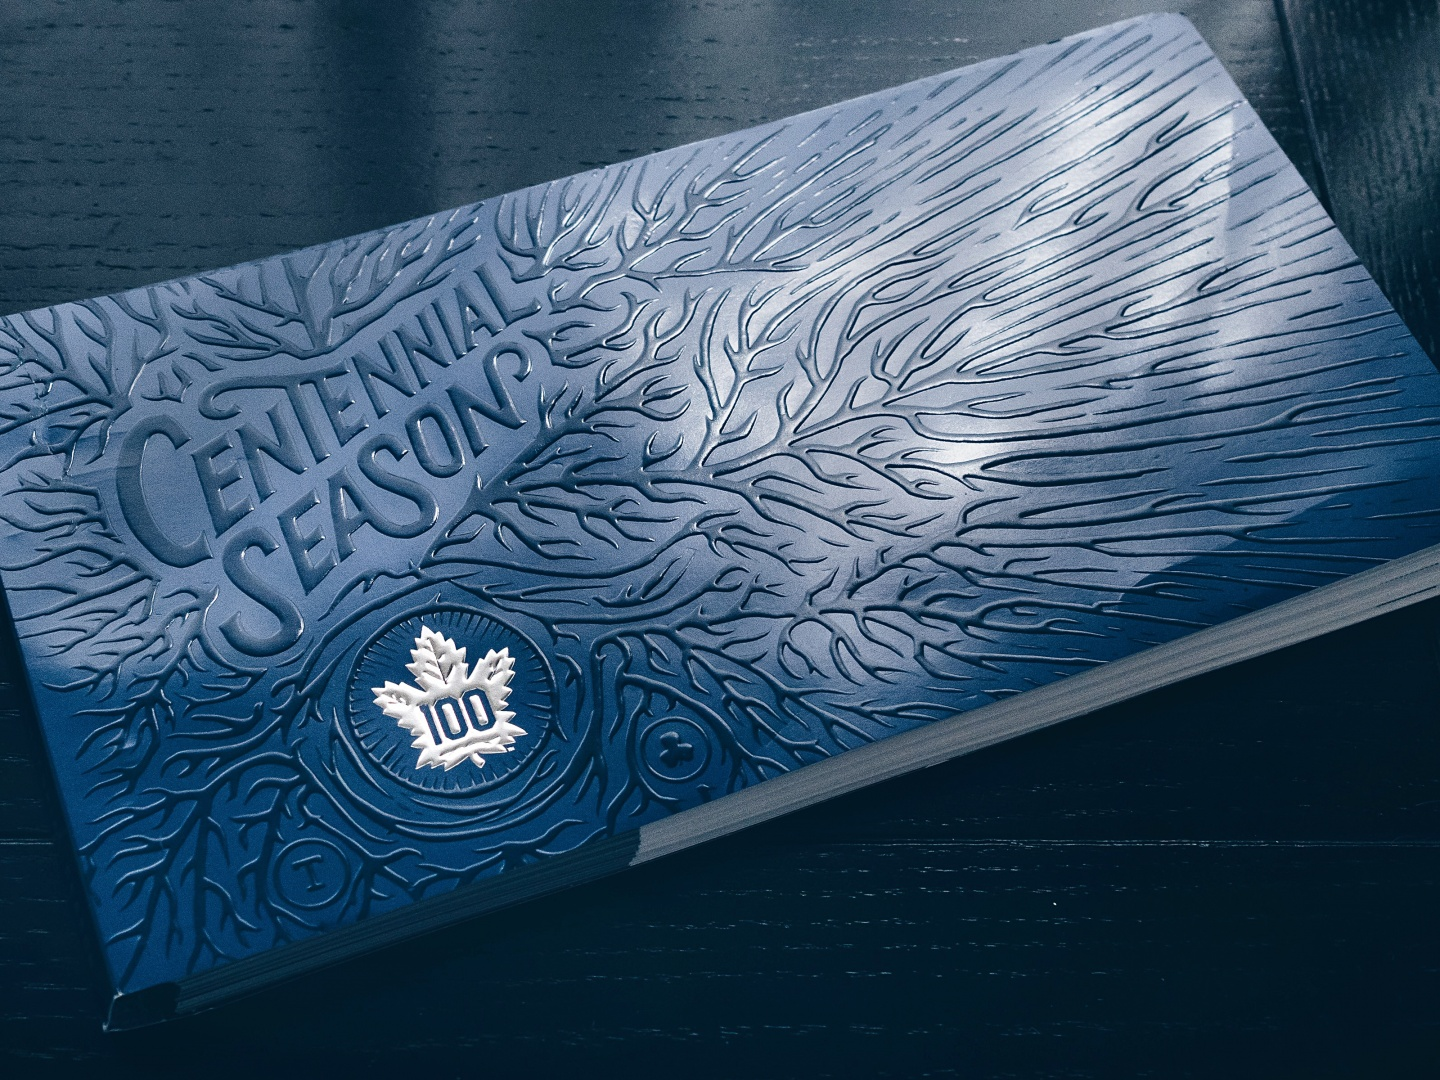 Toronto Maple Leafs 2016-17 Centennial Season Ticket Package Thumbnail